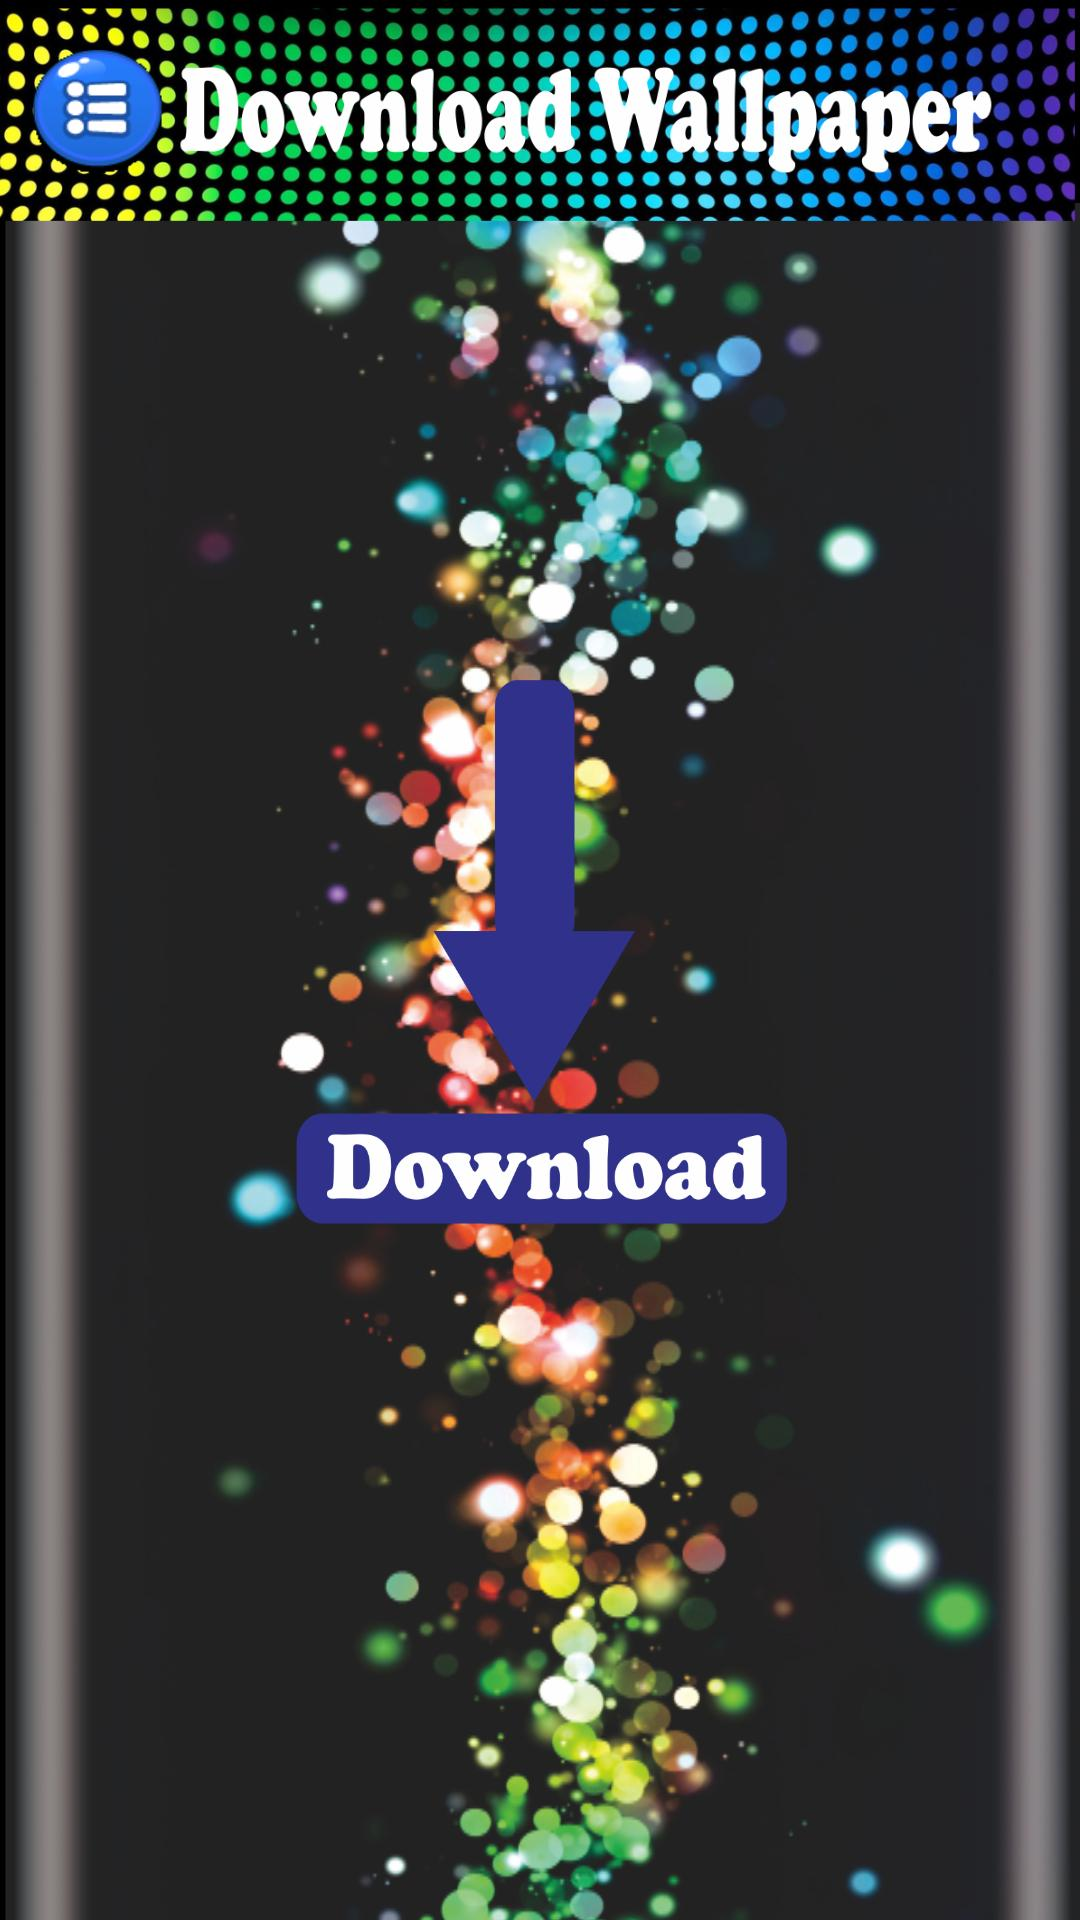 Wallpaper Melengkung V2 For Android APK Download